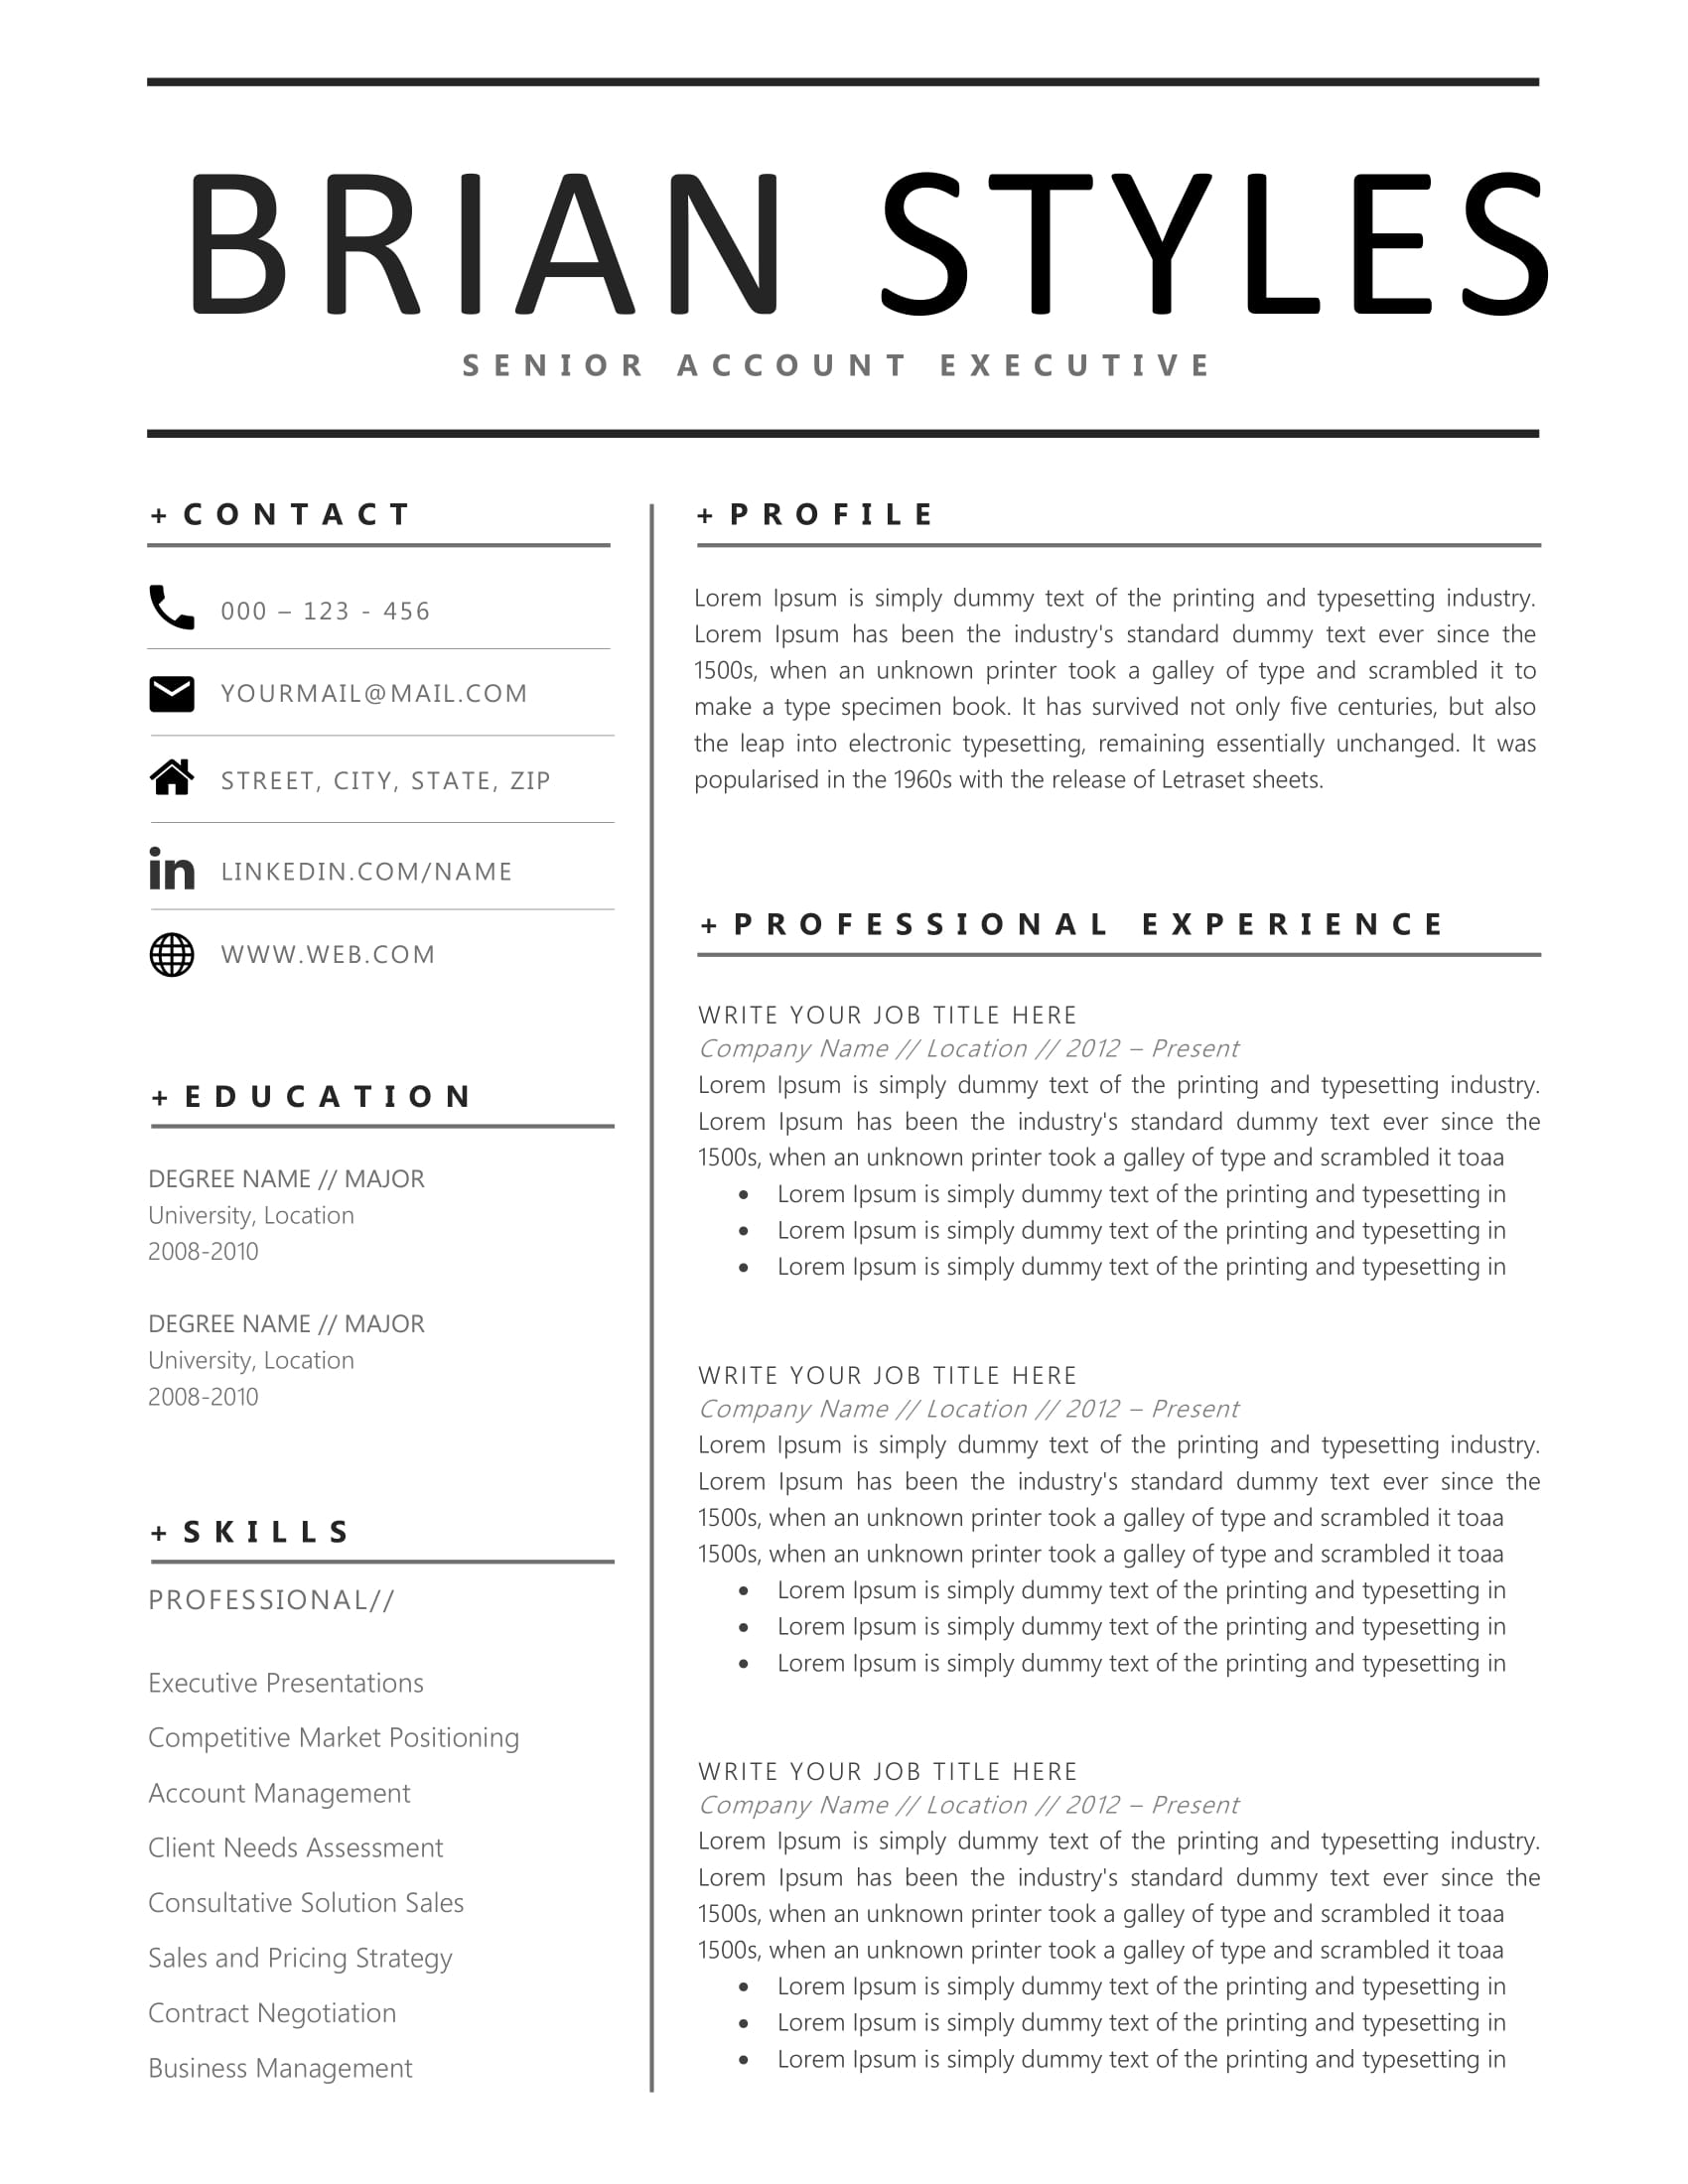 Clean Resume Design 20